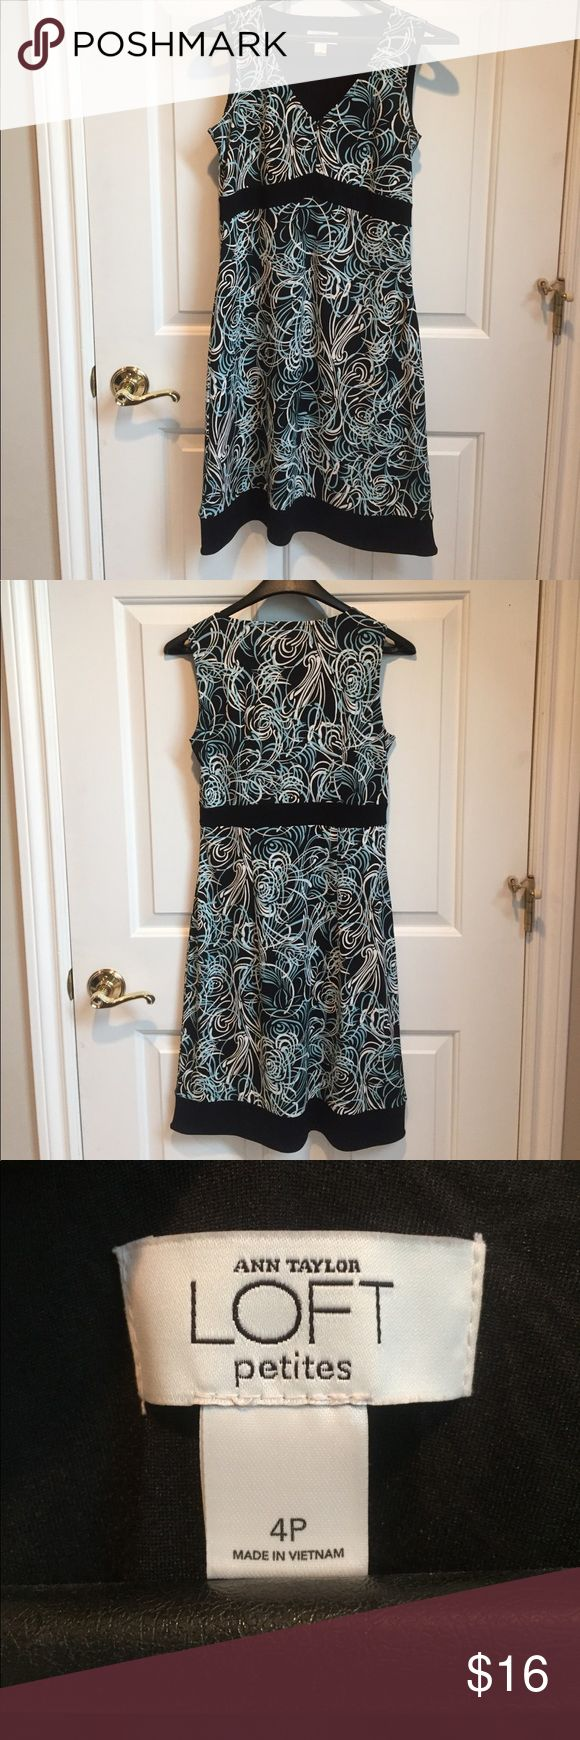 Ann Taylor Loft dress size 4p EUC Anne Taylor Loft dress size 4p. Colors: black with light blue and white swirls. 100% Polyester. Very comfy and cute for those summer weddings! LOFT Dresses